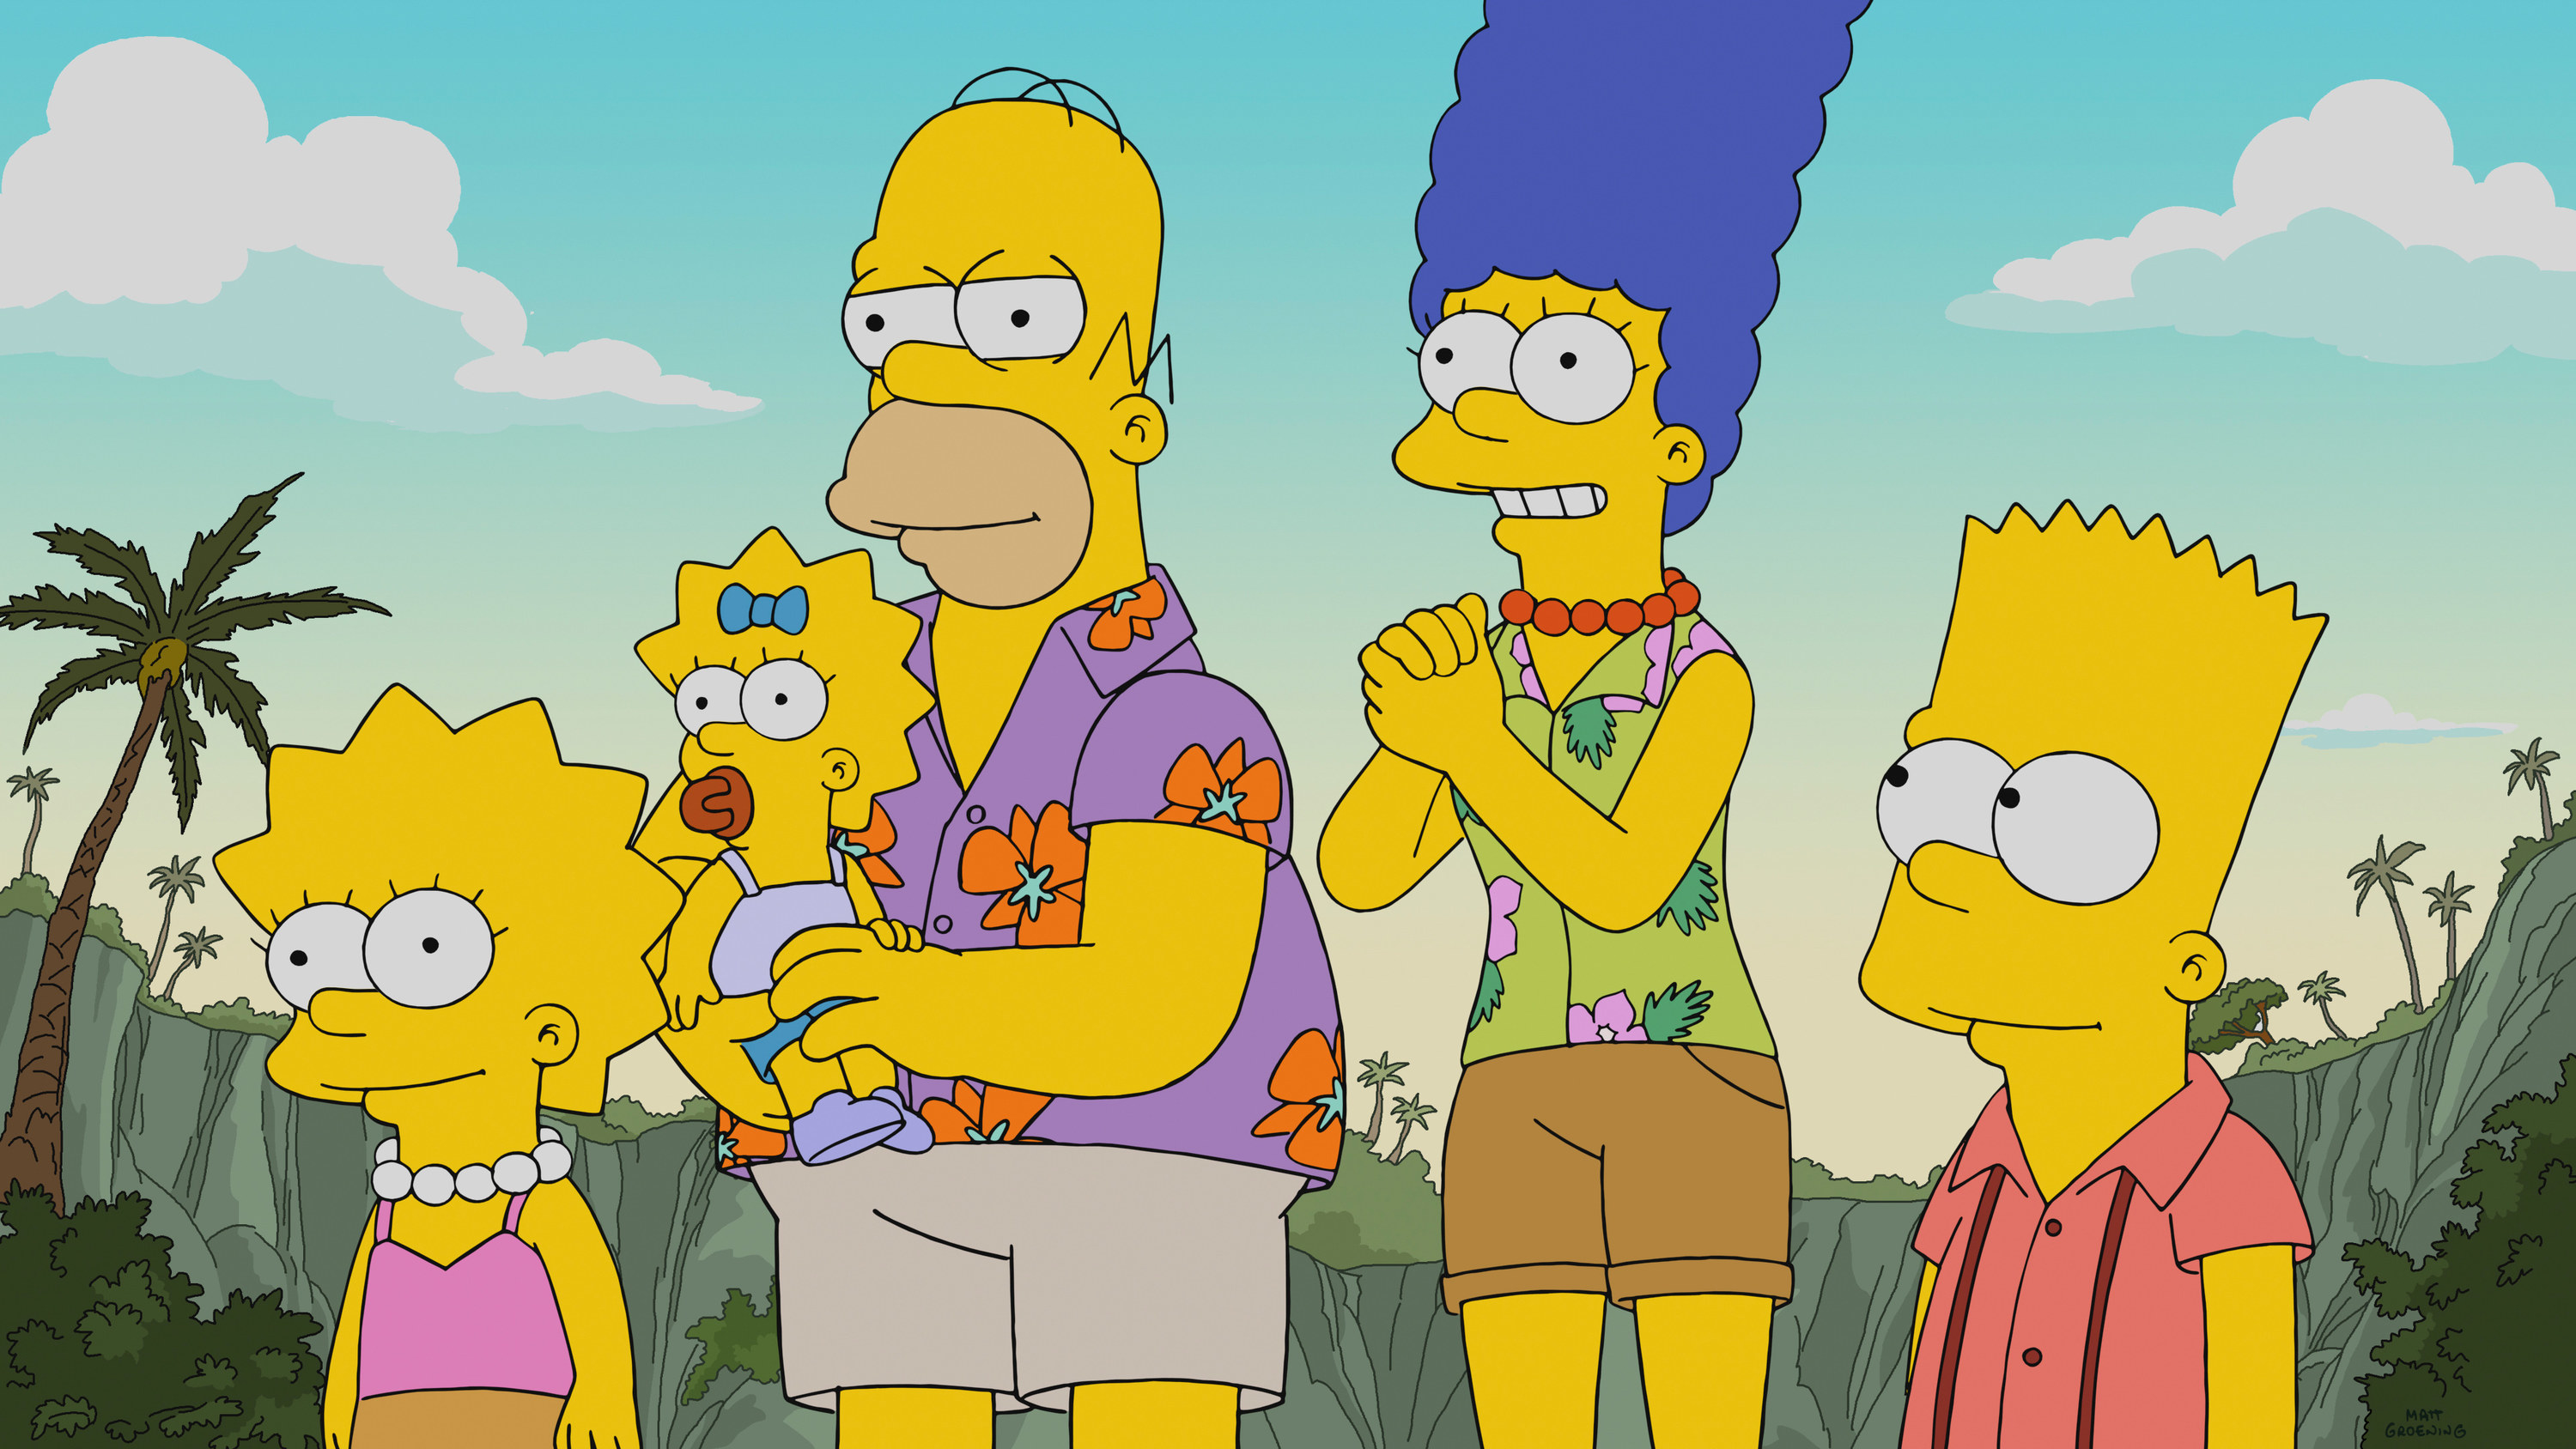 Lisa, Maggie, Homer, Marge, and Bart Simpson on a vacation